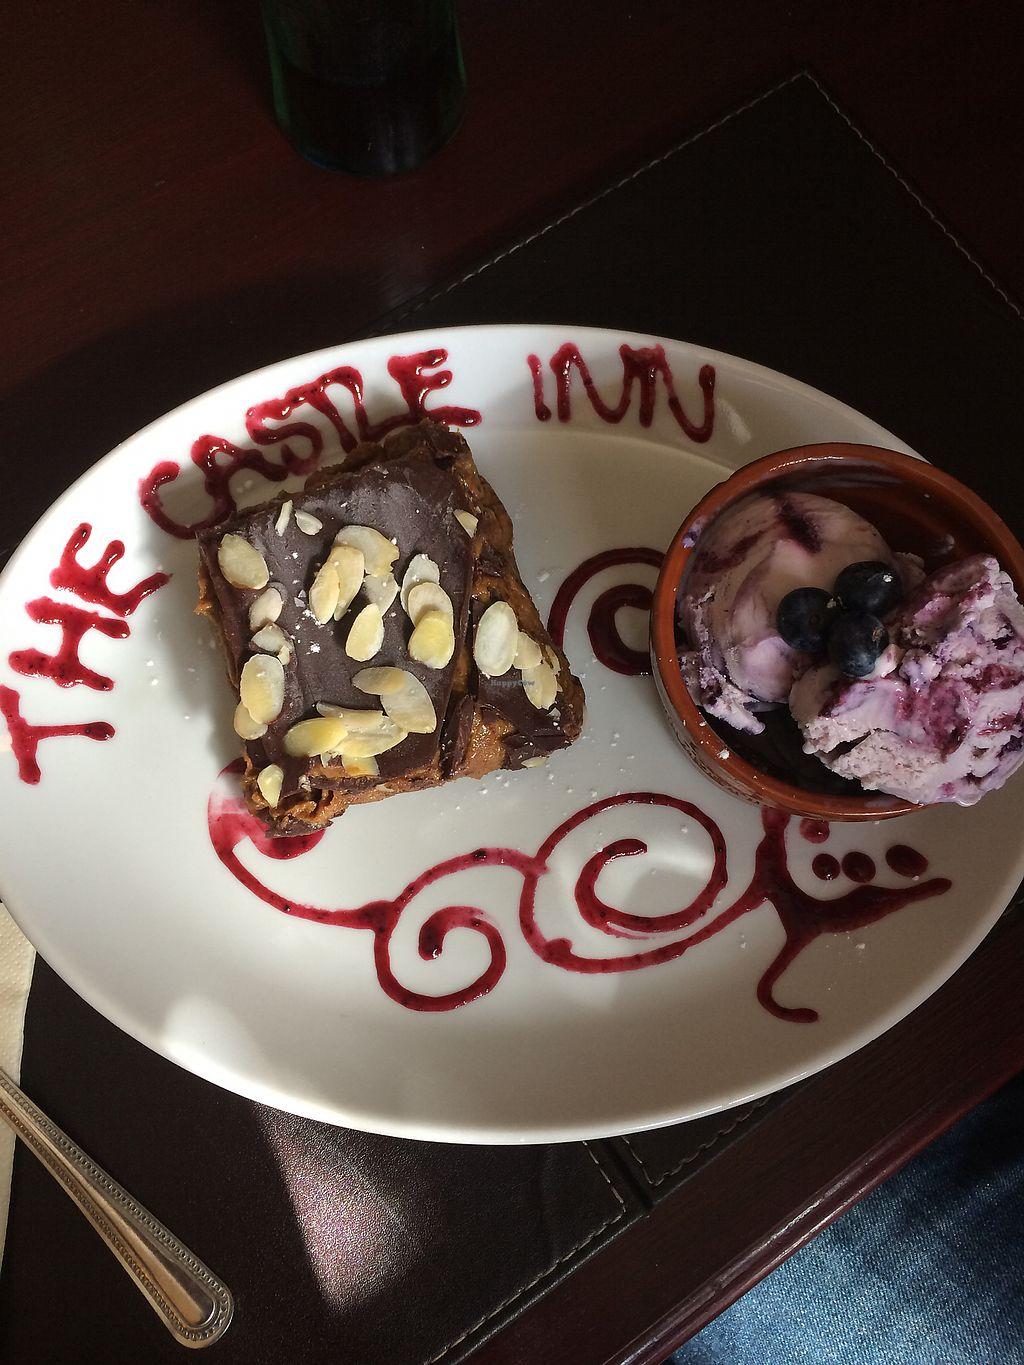 """Photo of The Castle Inn   by <a href=""""/members/profile/TinaDipi"""">TinaDipi</a> <br/>Salted caramel tart- delicious! <br/> September 12, 2017  - <a href='/contact/abuse/image/88054/303626'>Report</a>"""